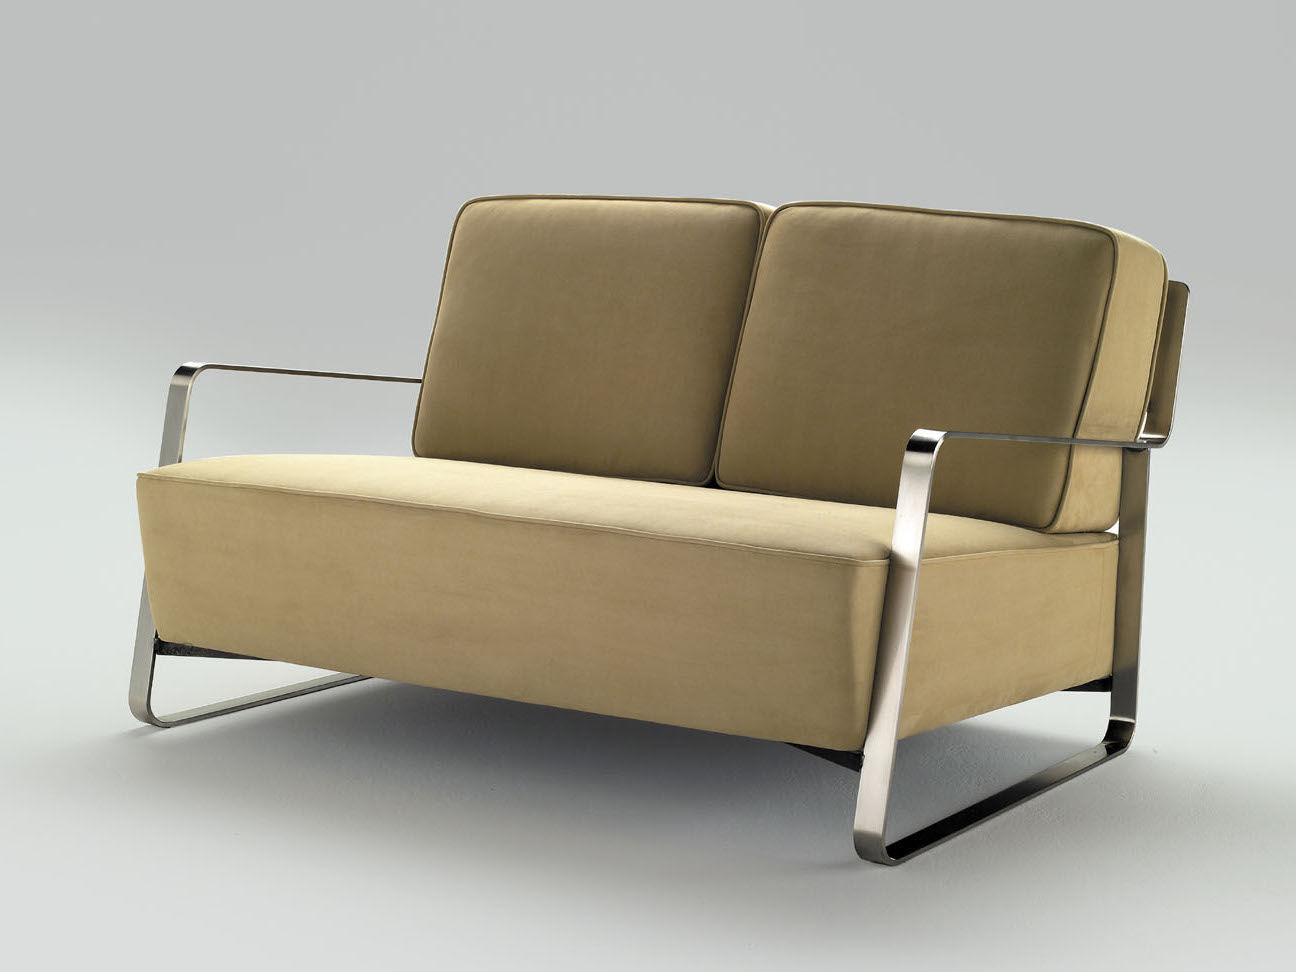 Fujiyama small sofa by orsenigo design umberto asnago for Small settee